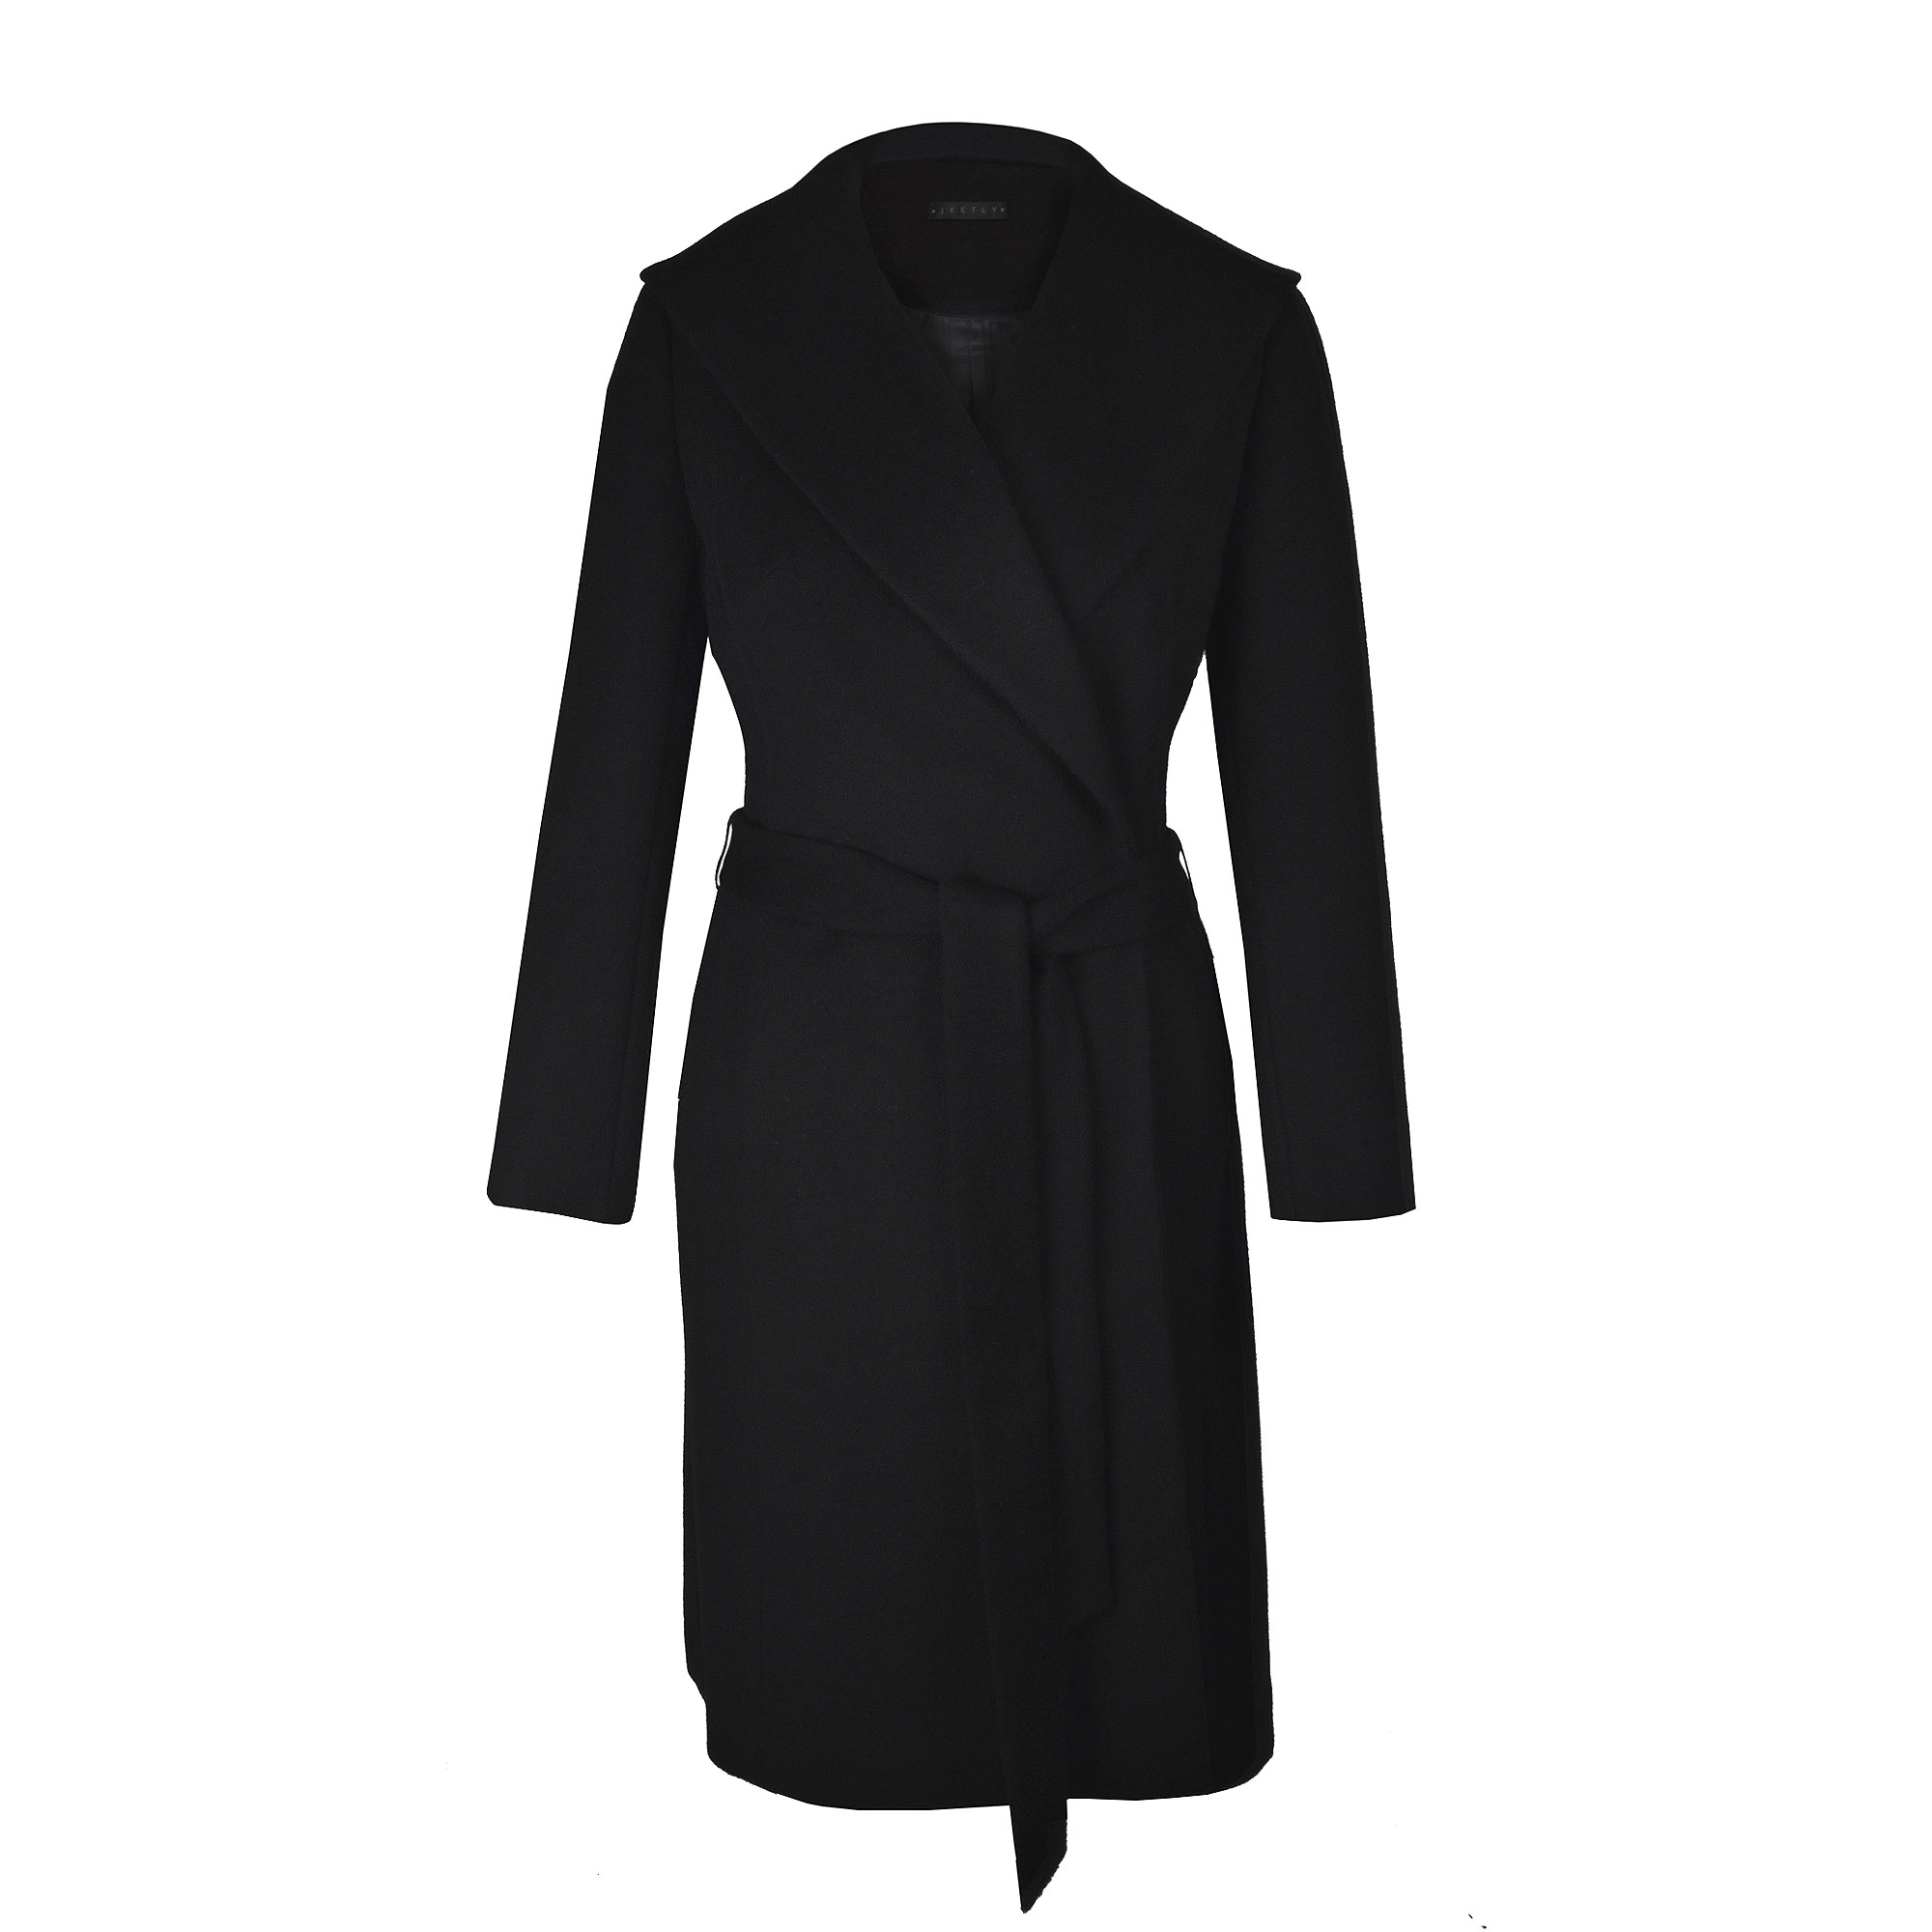 Jeetly - ANNA - Petite black coat